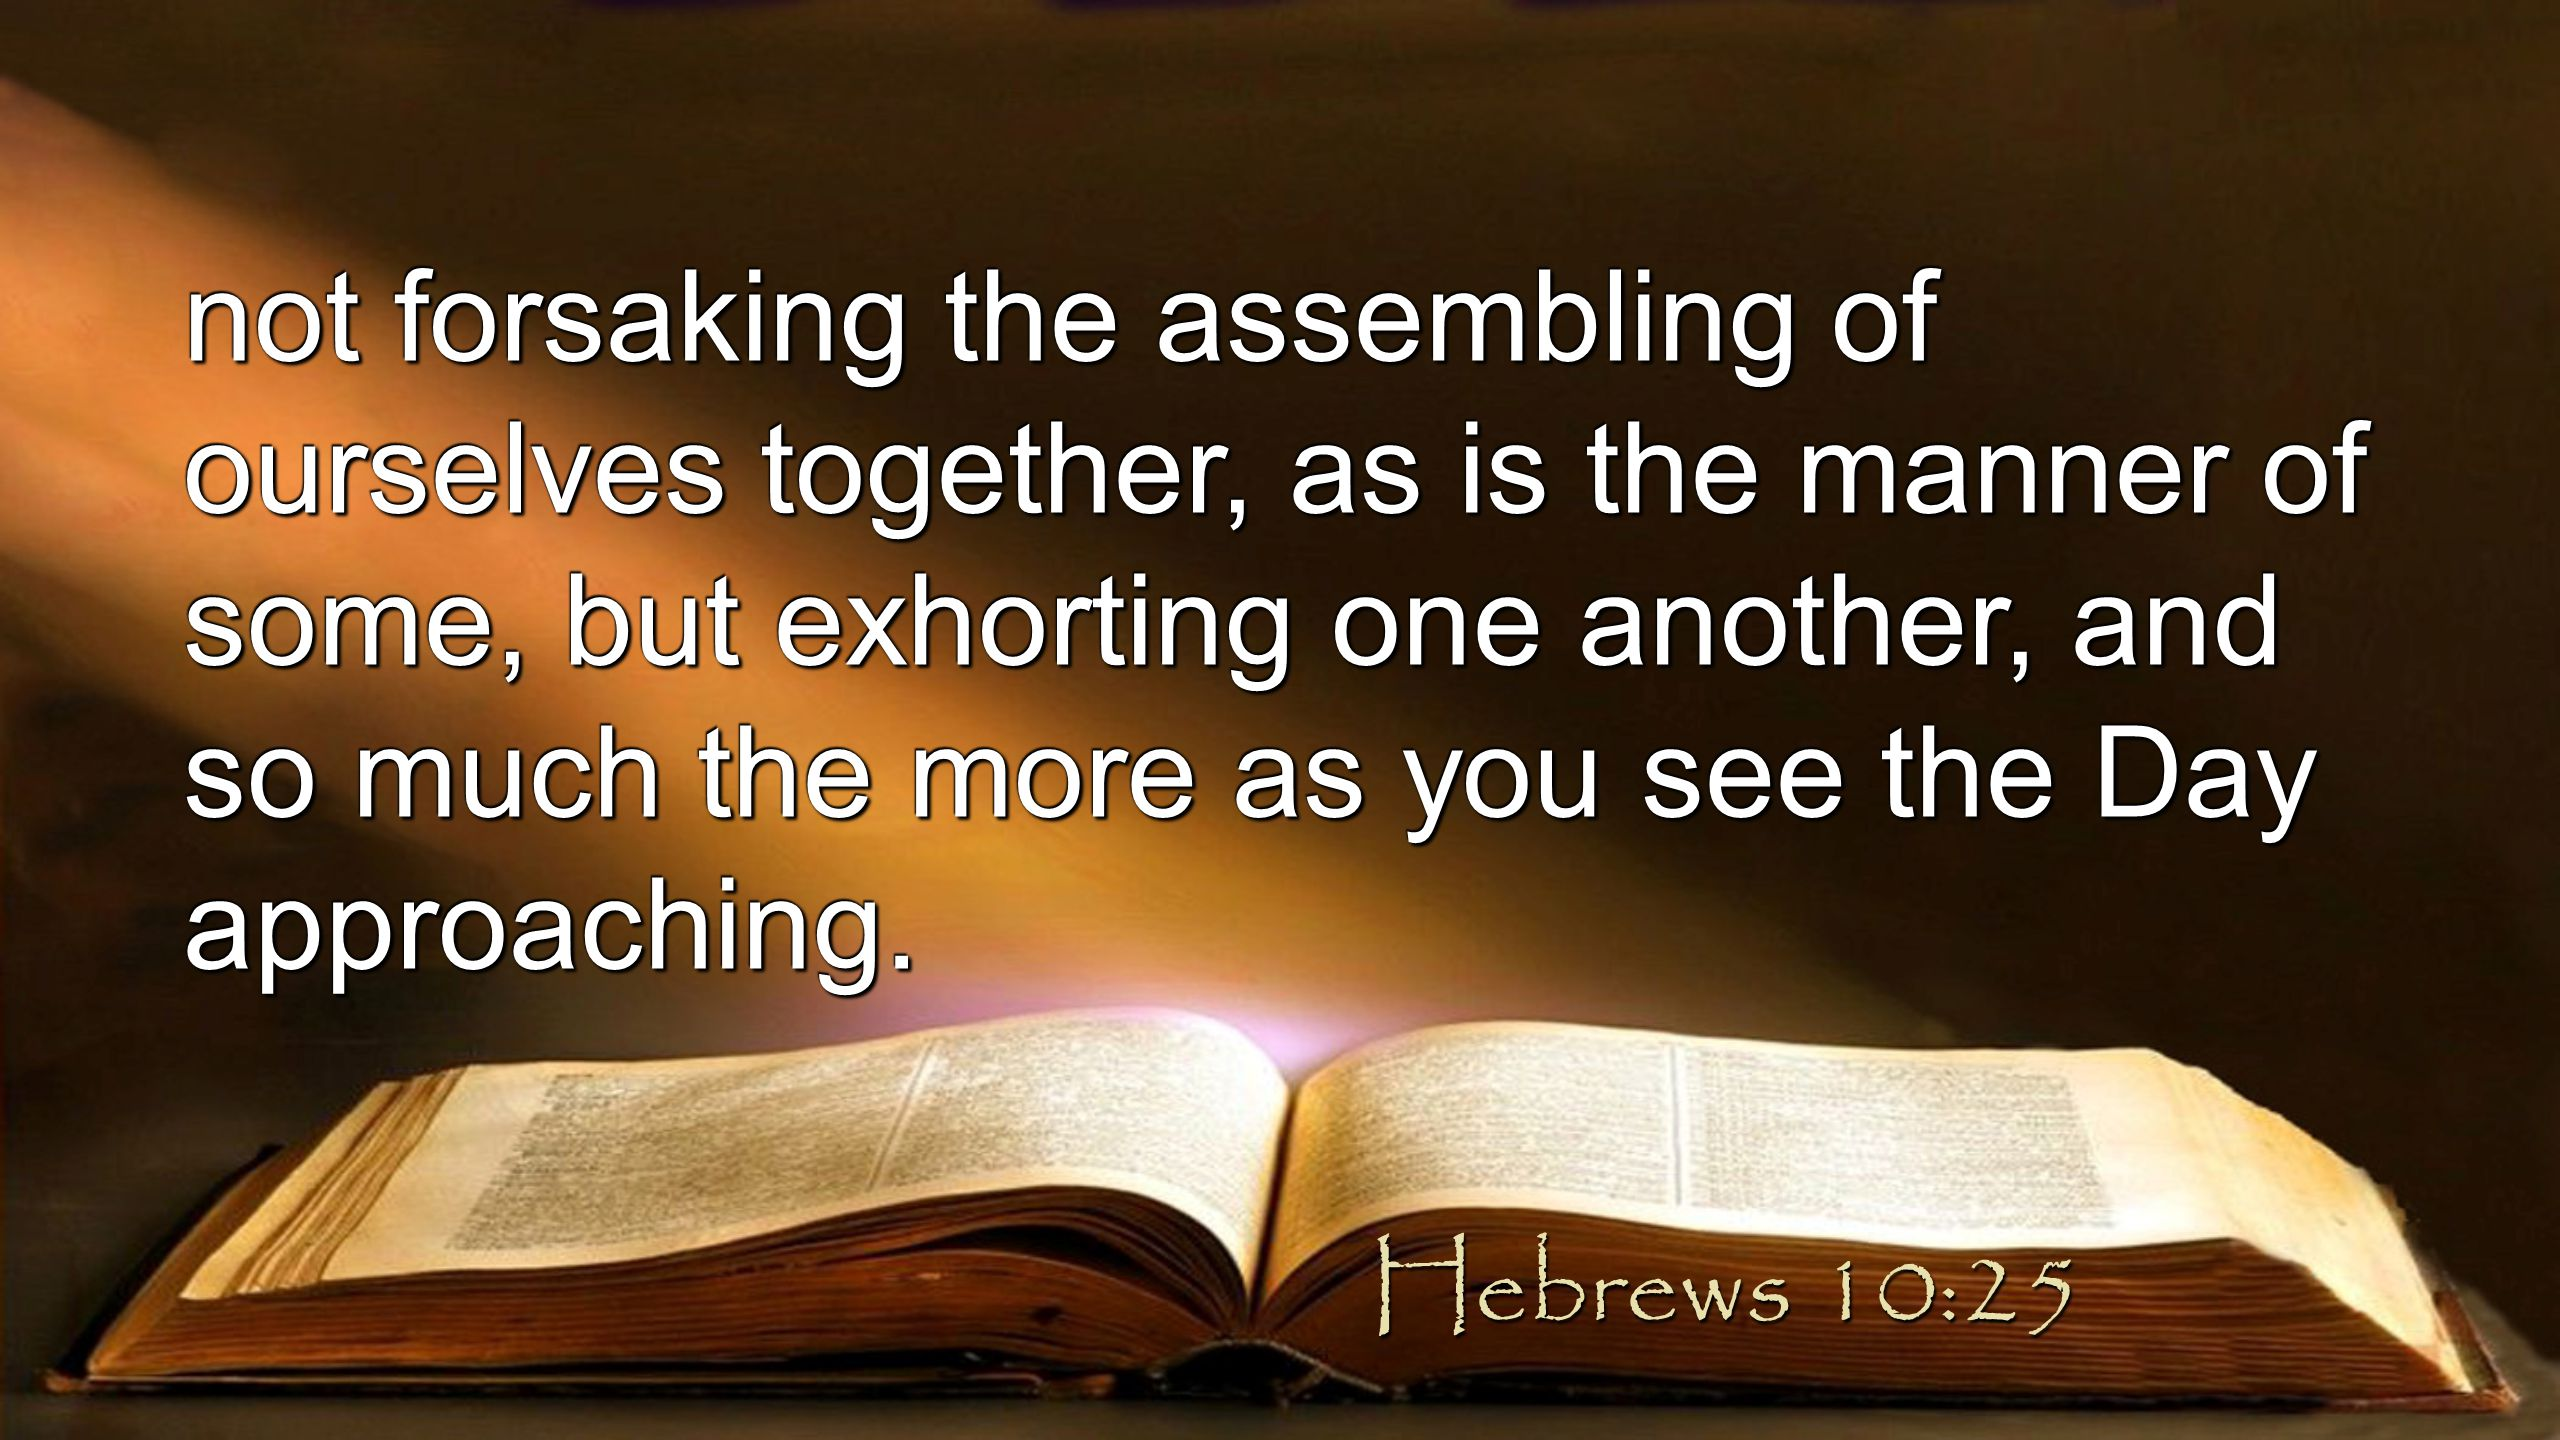 not forsaking the assembling of ourselves together, as is the manner of some, but exhorting one another, and so much the more as you see the Day approaching.